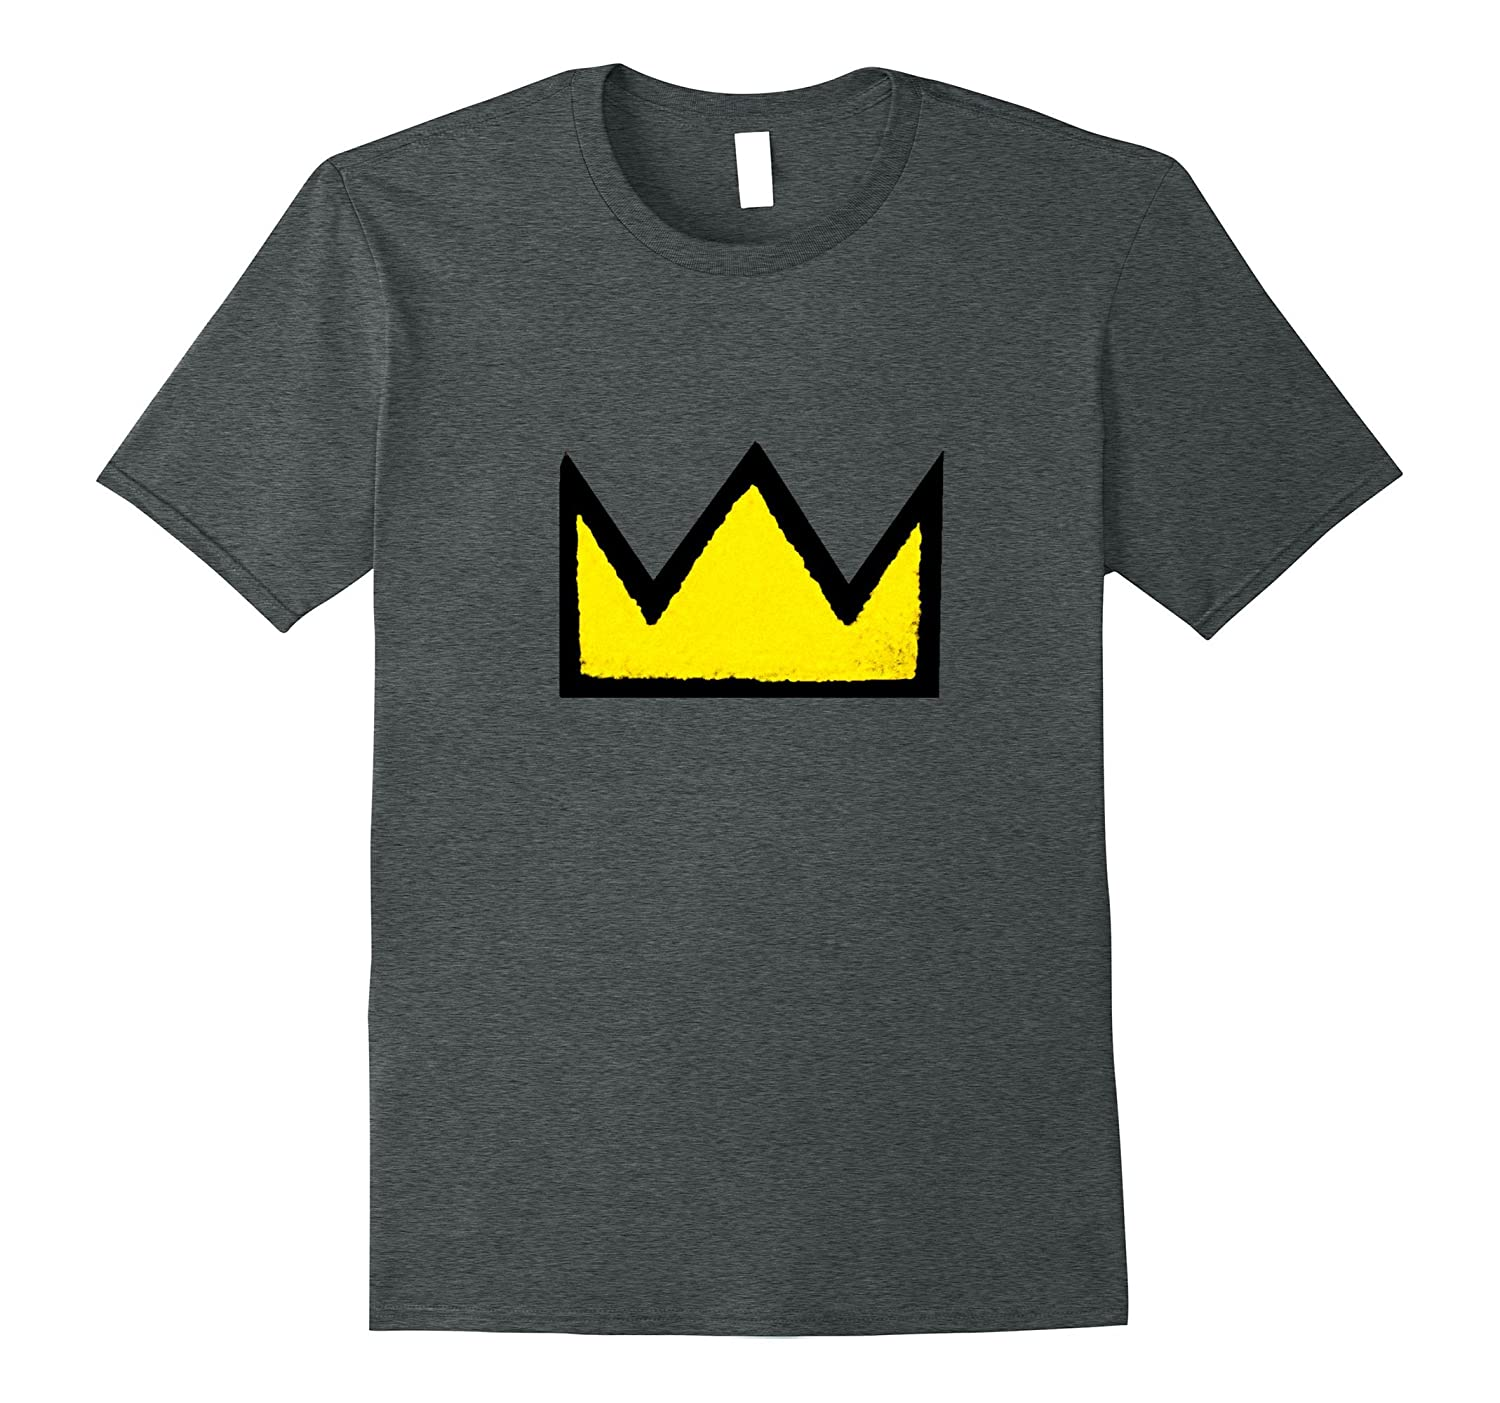 Betty Crown Episode 10 Costume T-shirt Top-FL